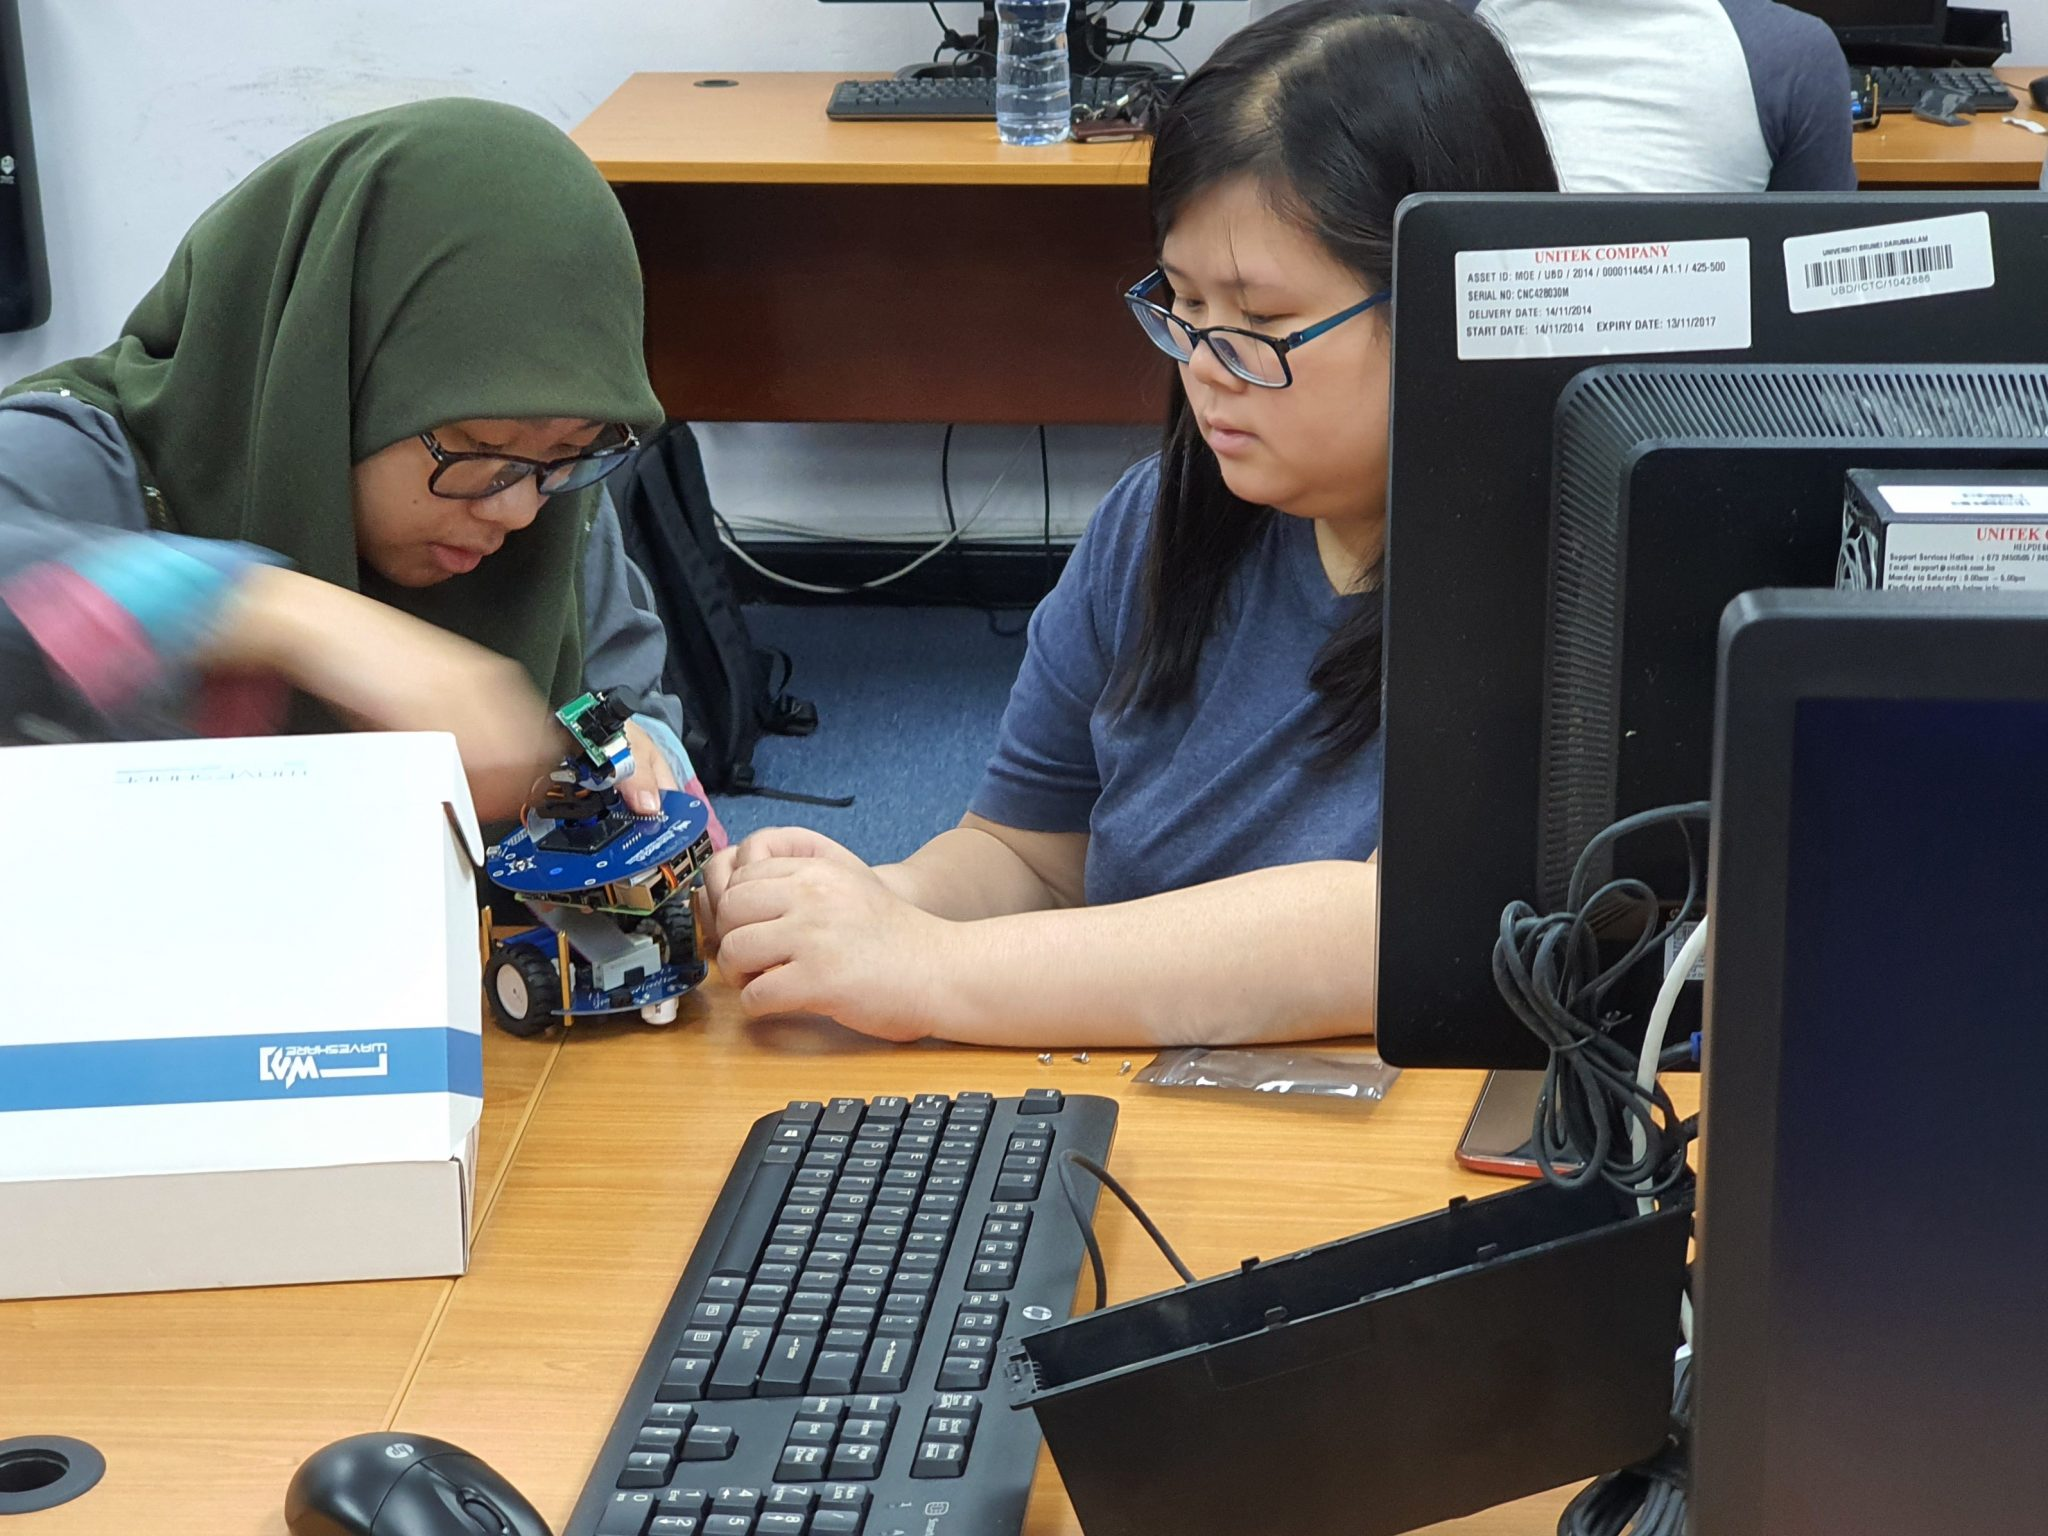 New session of Robot Programming has started